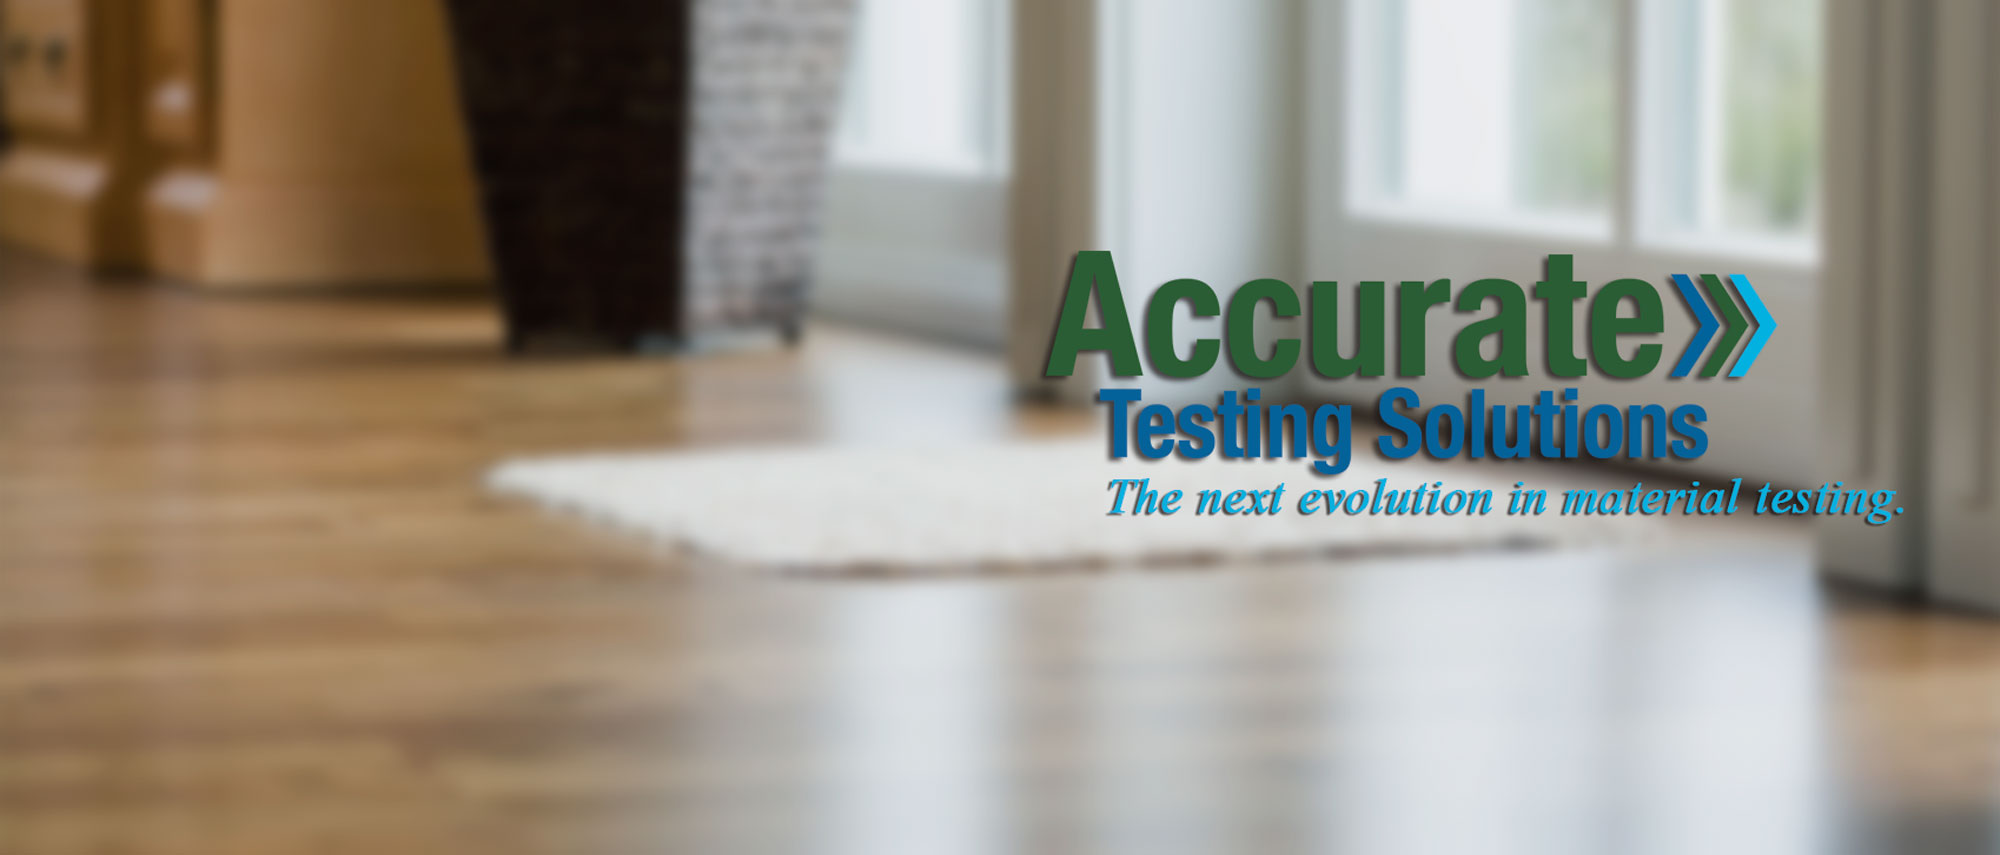 Accurate Testing Solutions Home